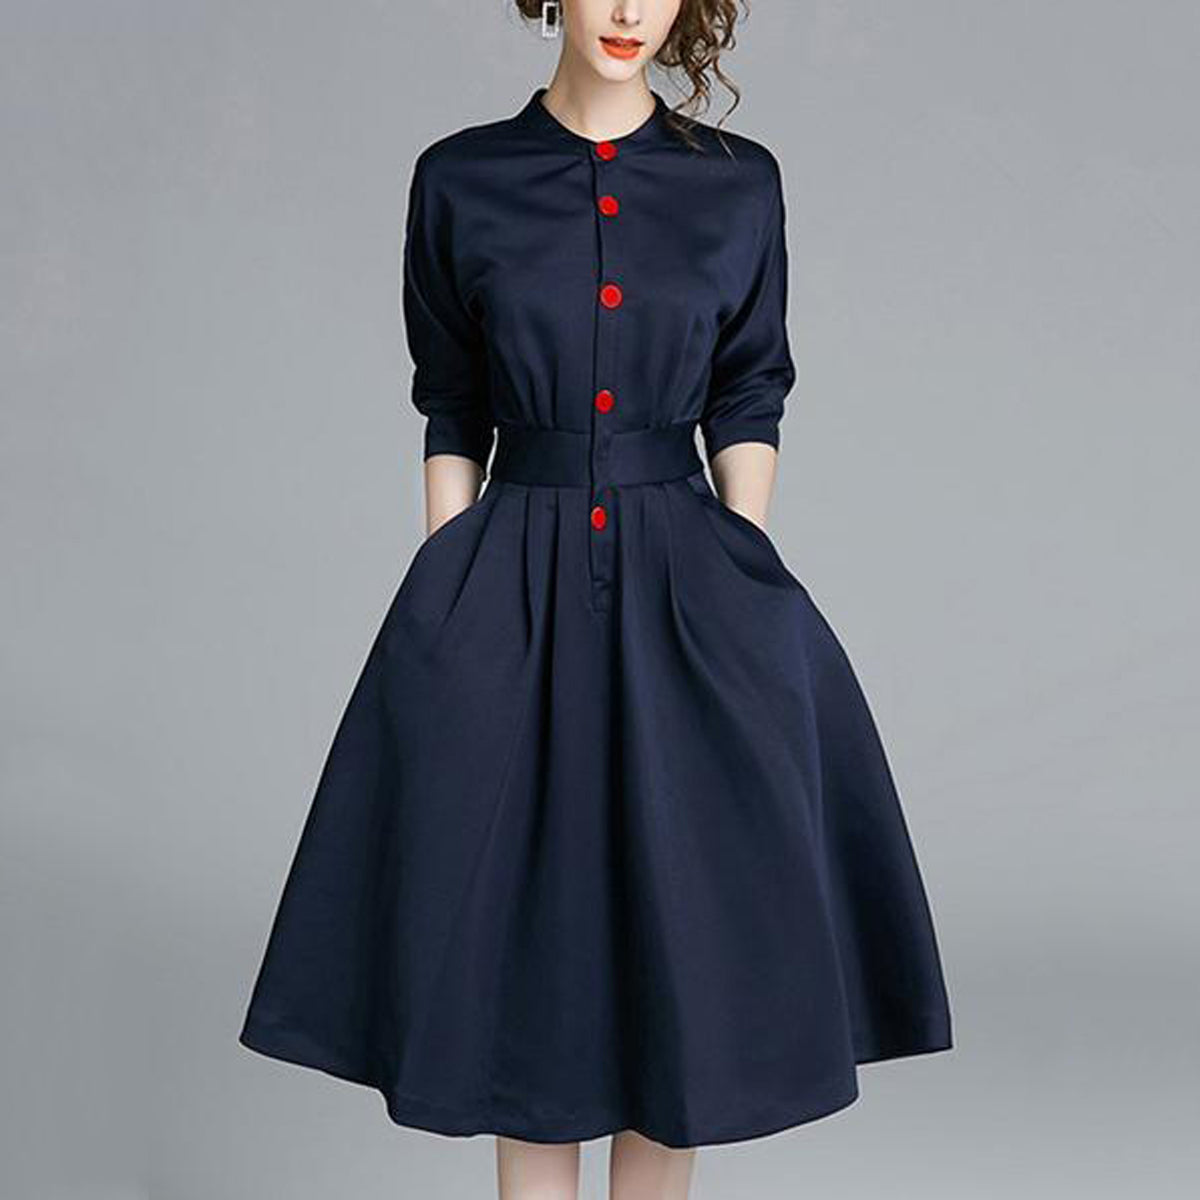 High Quality Women's Band Neck Buckle Pocket Plain 3/4 Sleeves Midi Skater Dress